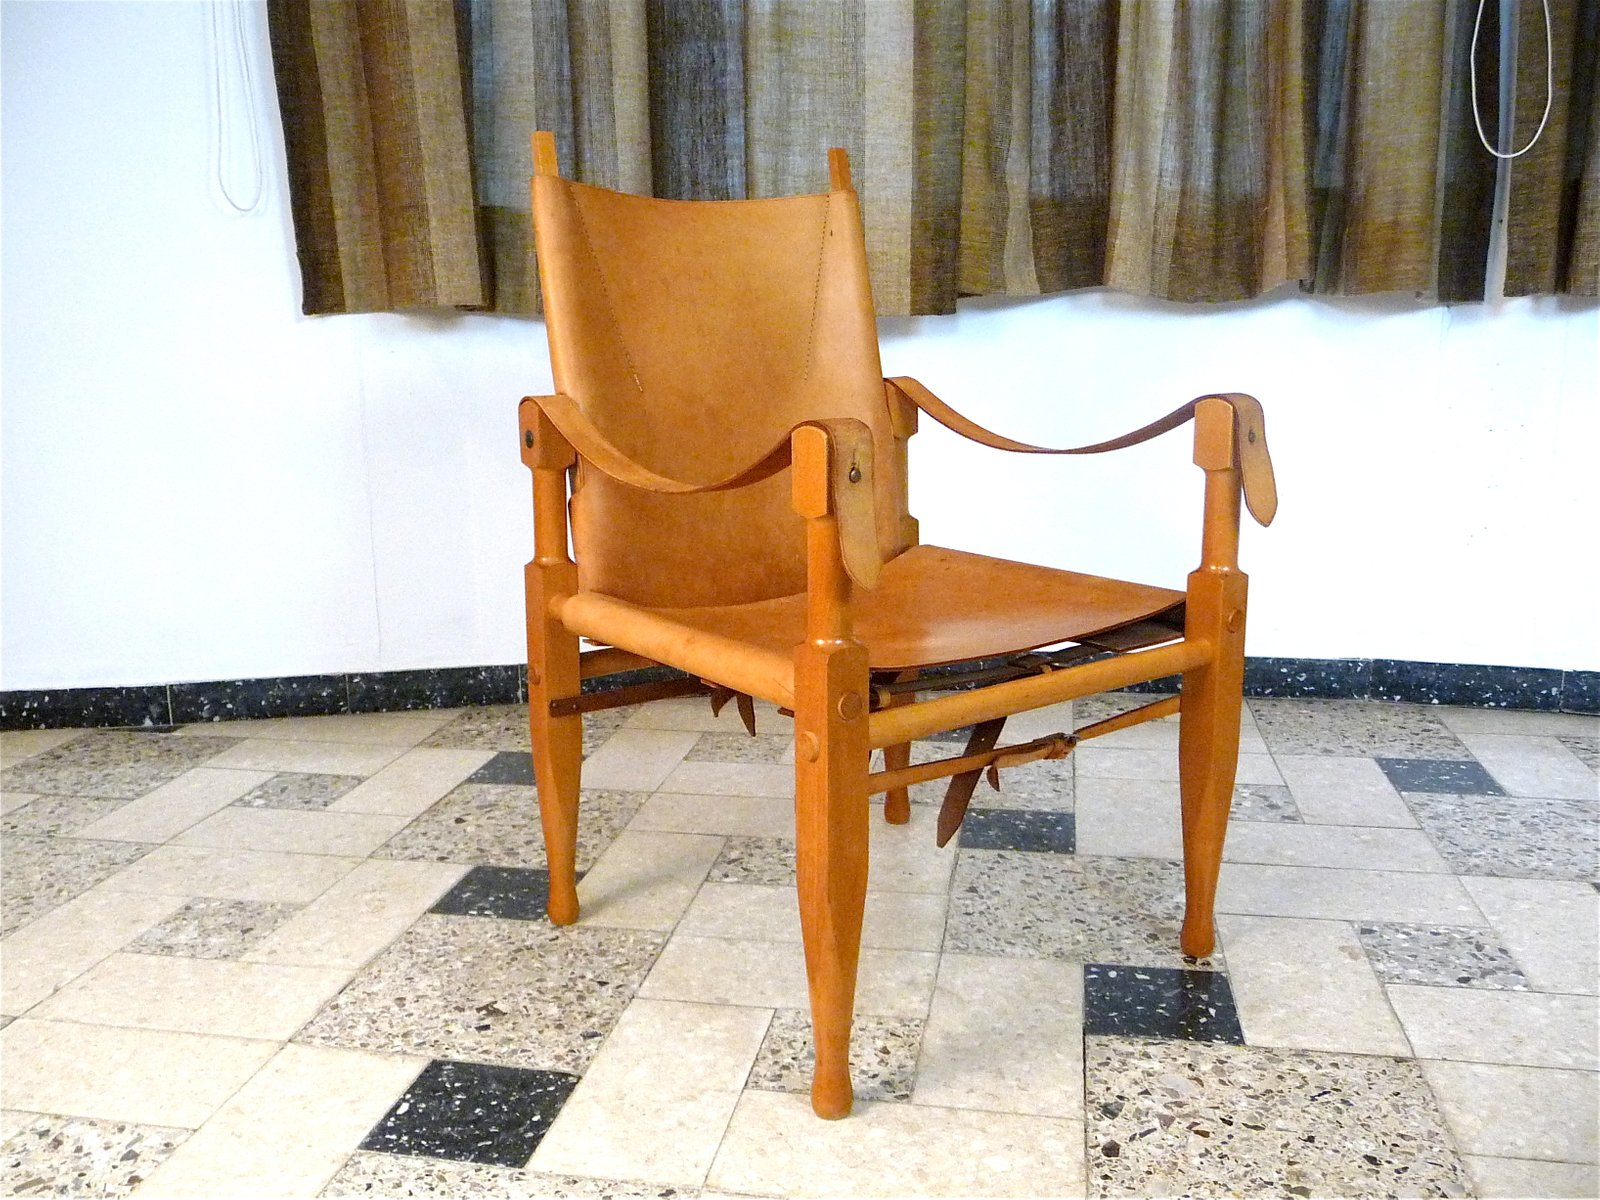 Swiss Leather Safari Chair By Wilhelm Kienzle For Wohnbedarf, 1960s